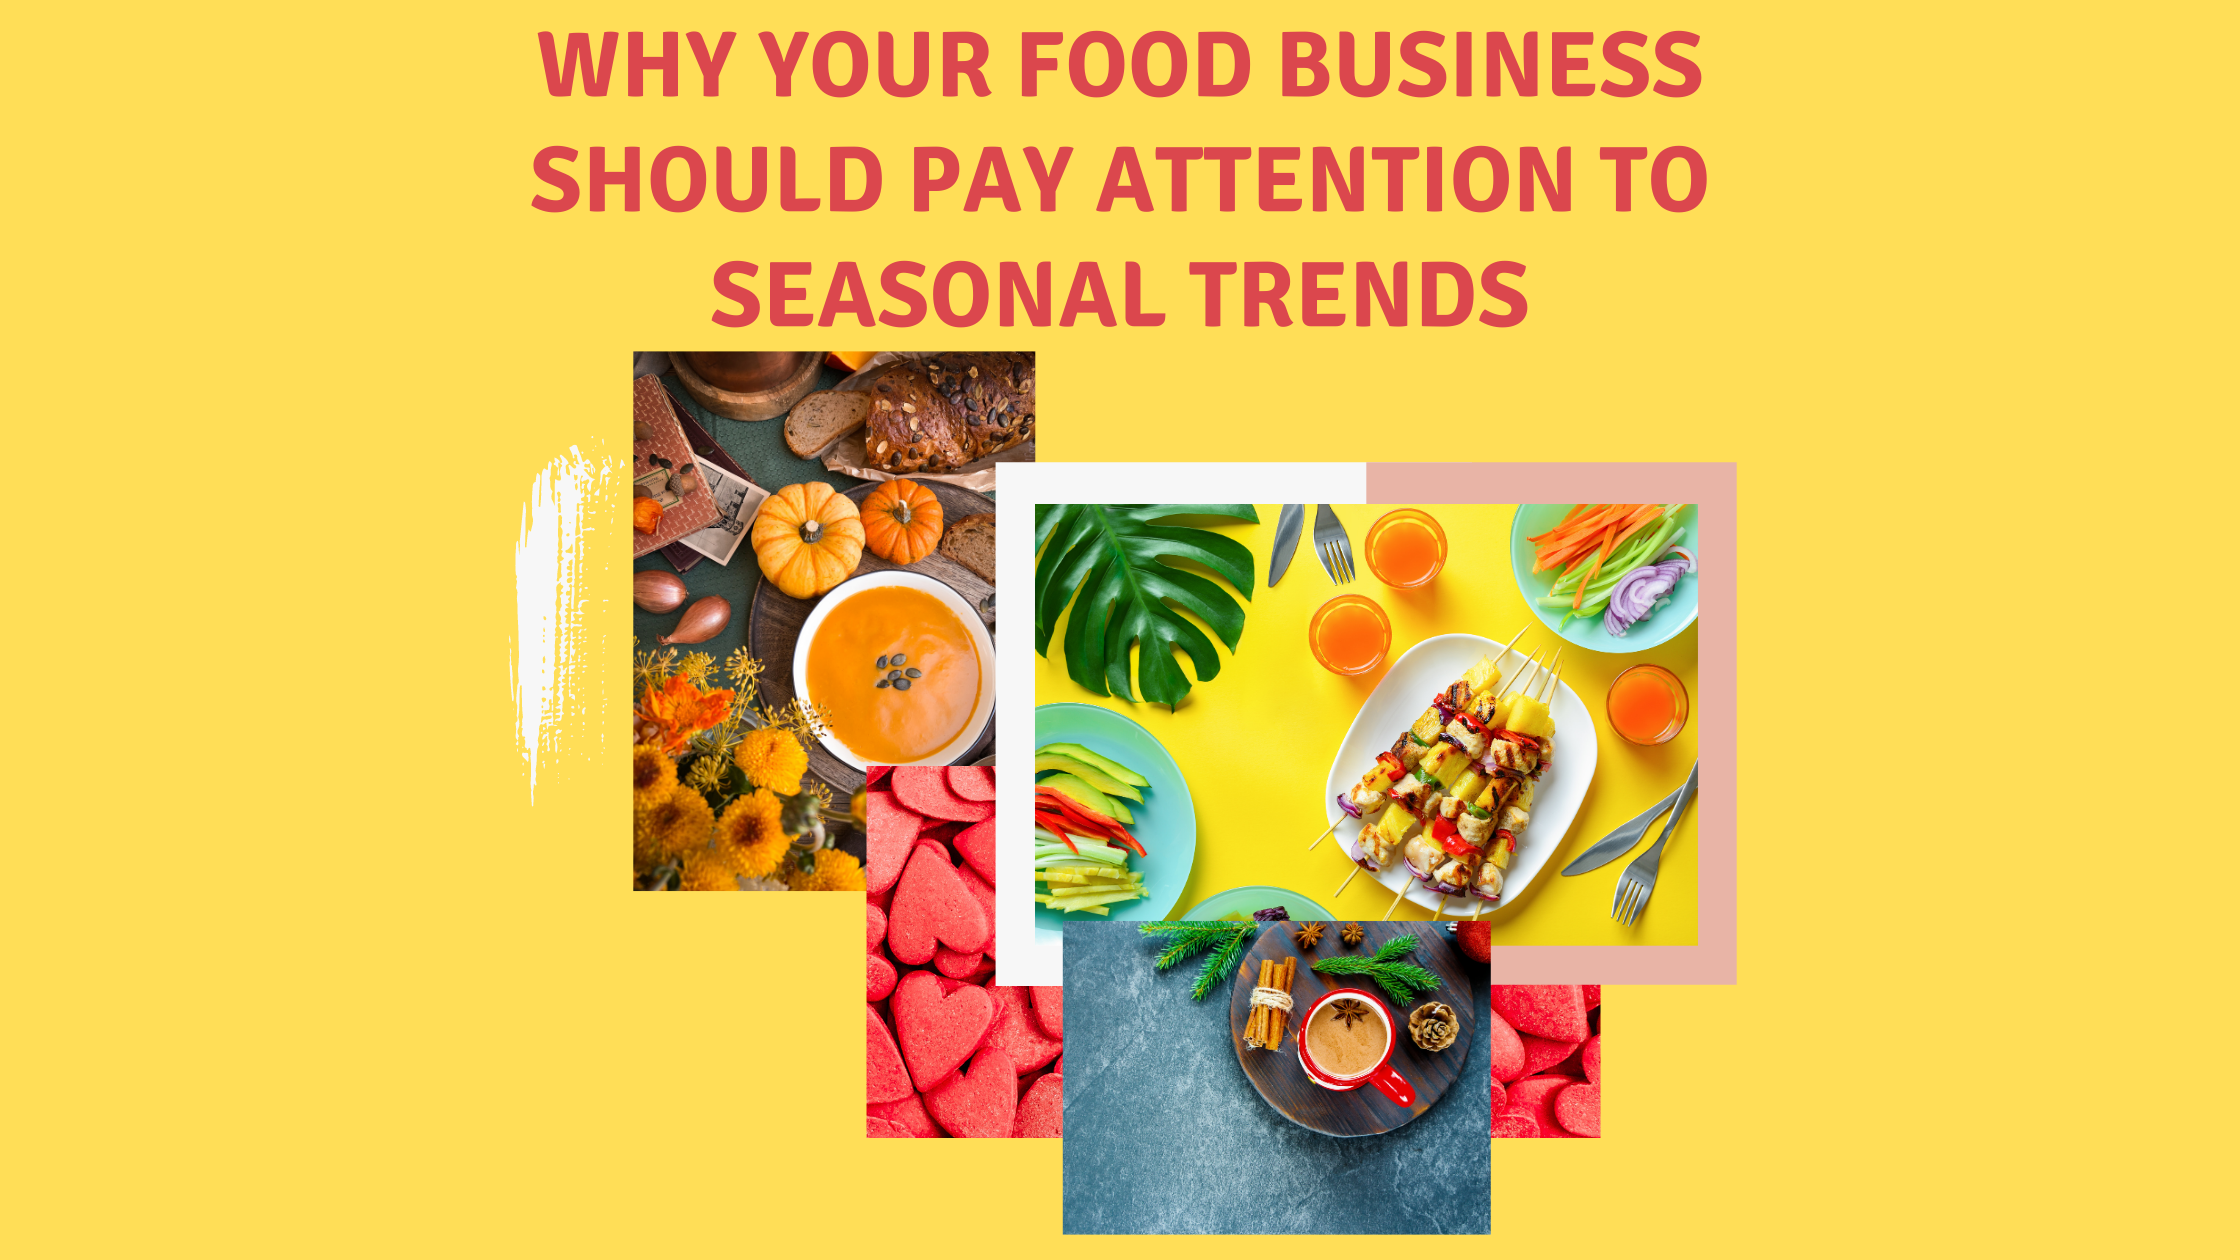 Best Way to Keep Your Food Business Relevant